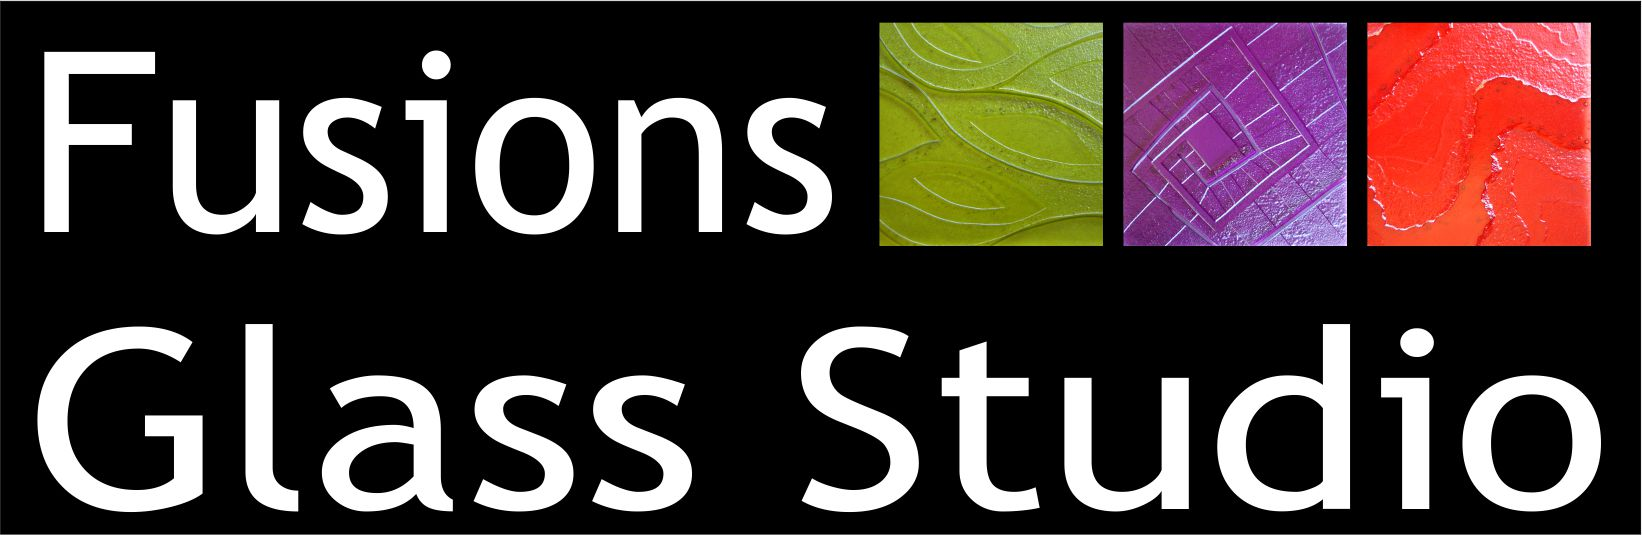 Fusions Glass Studio